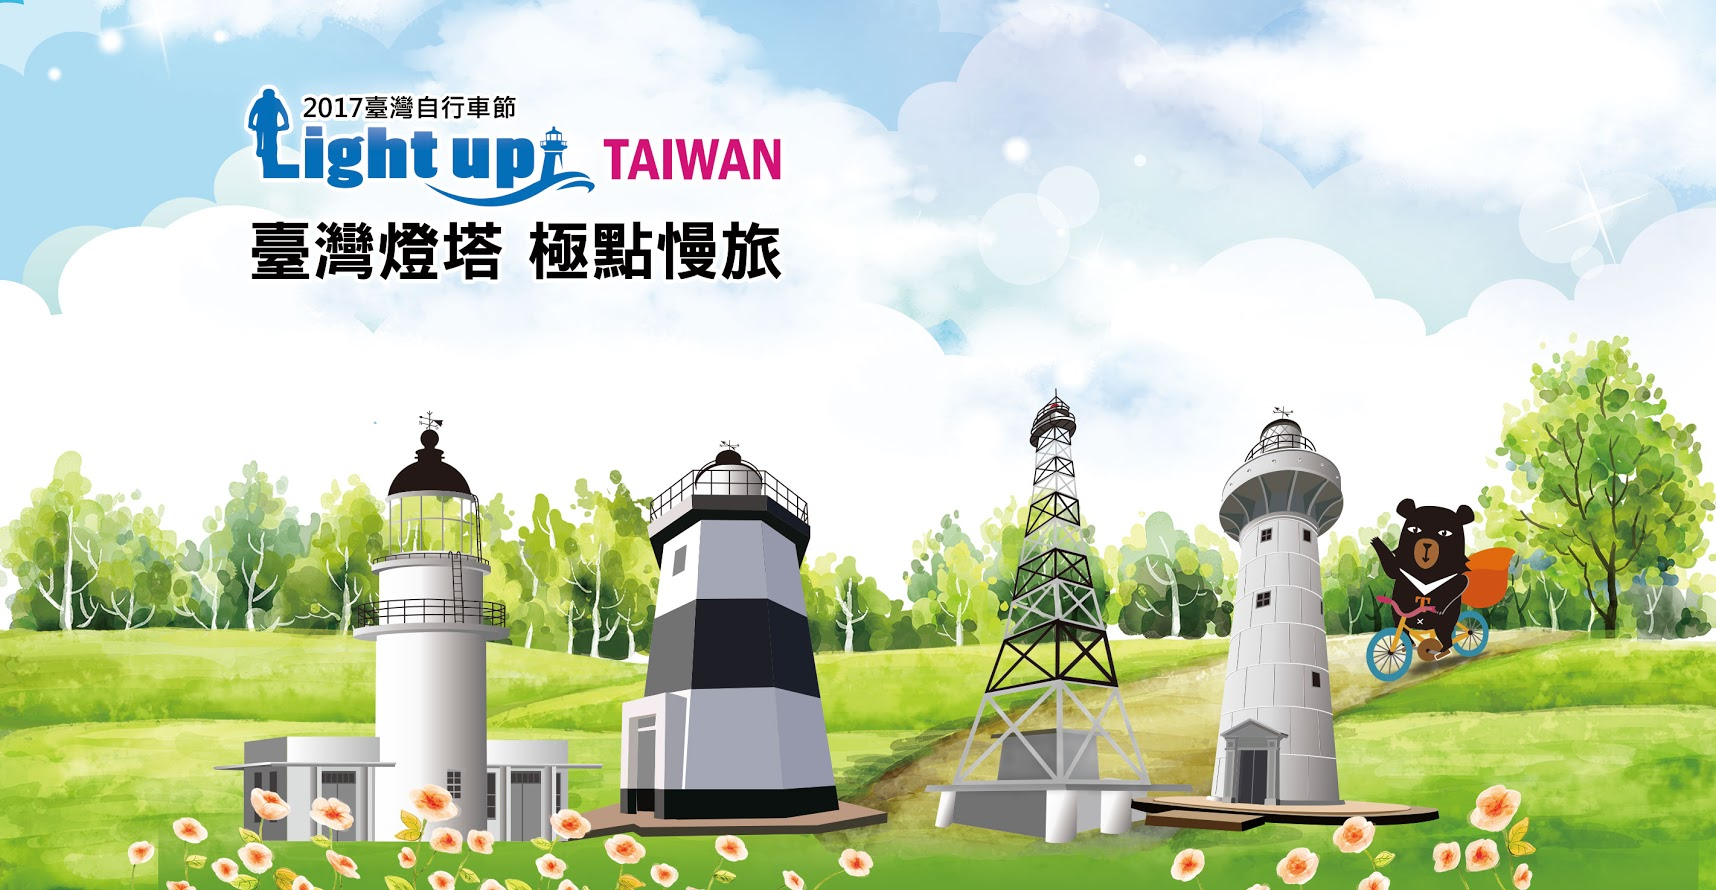 「極點慢旅Light up Taiwan」活動